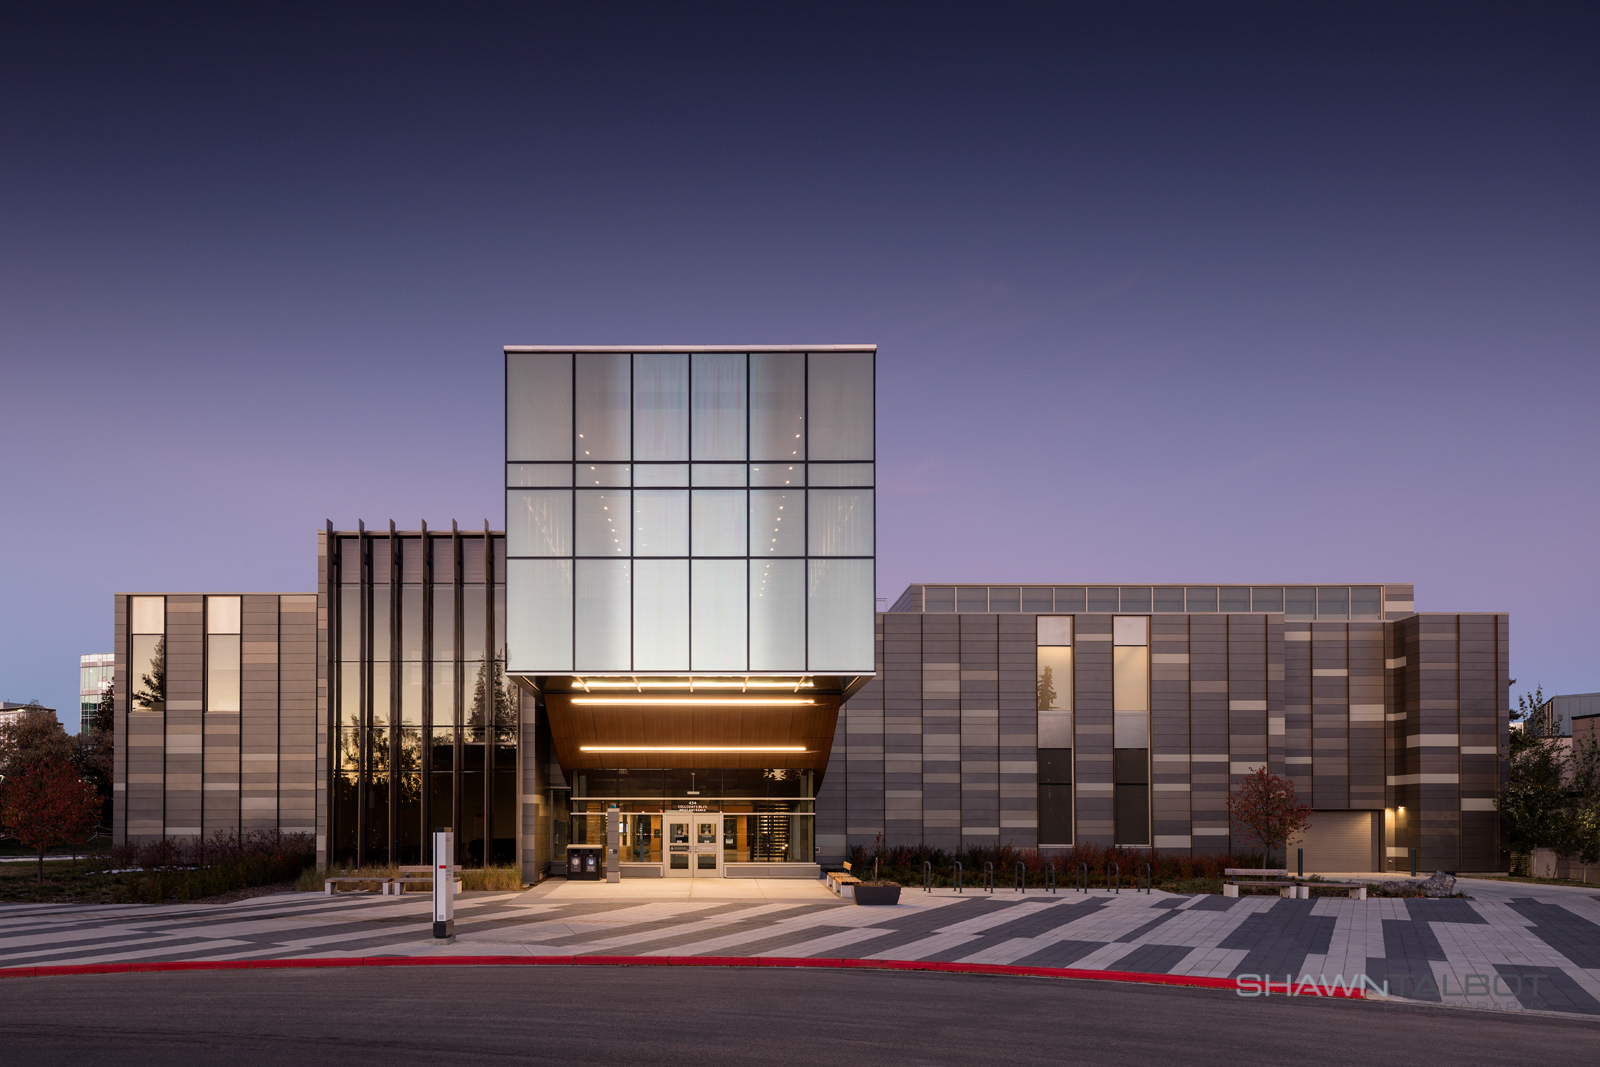 Shawn Talbot Architectural Photographer Calgary Building Exterior